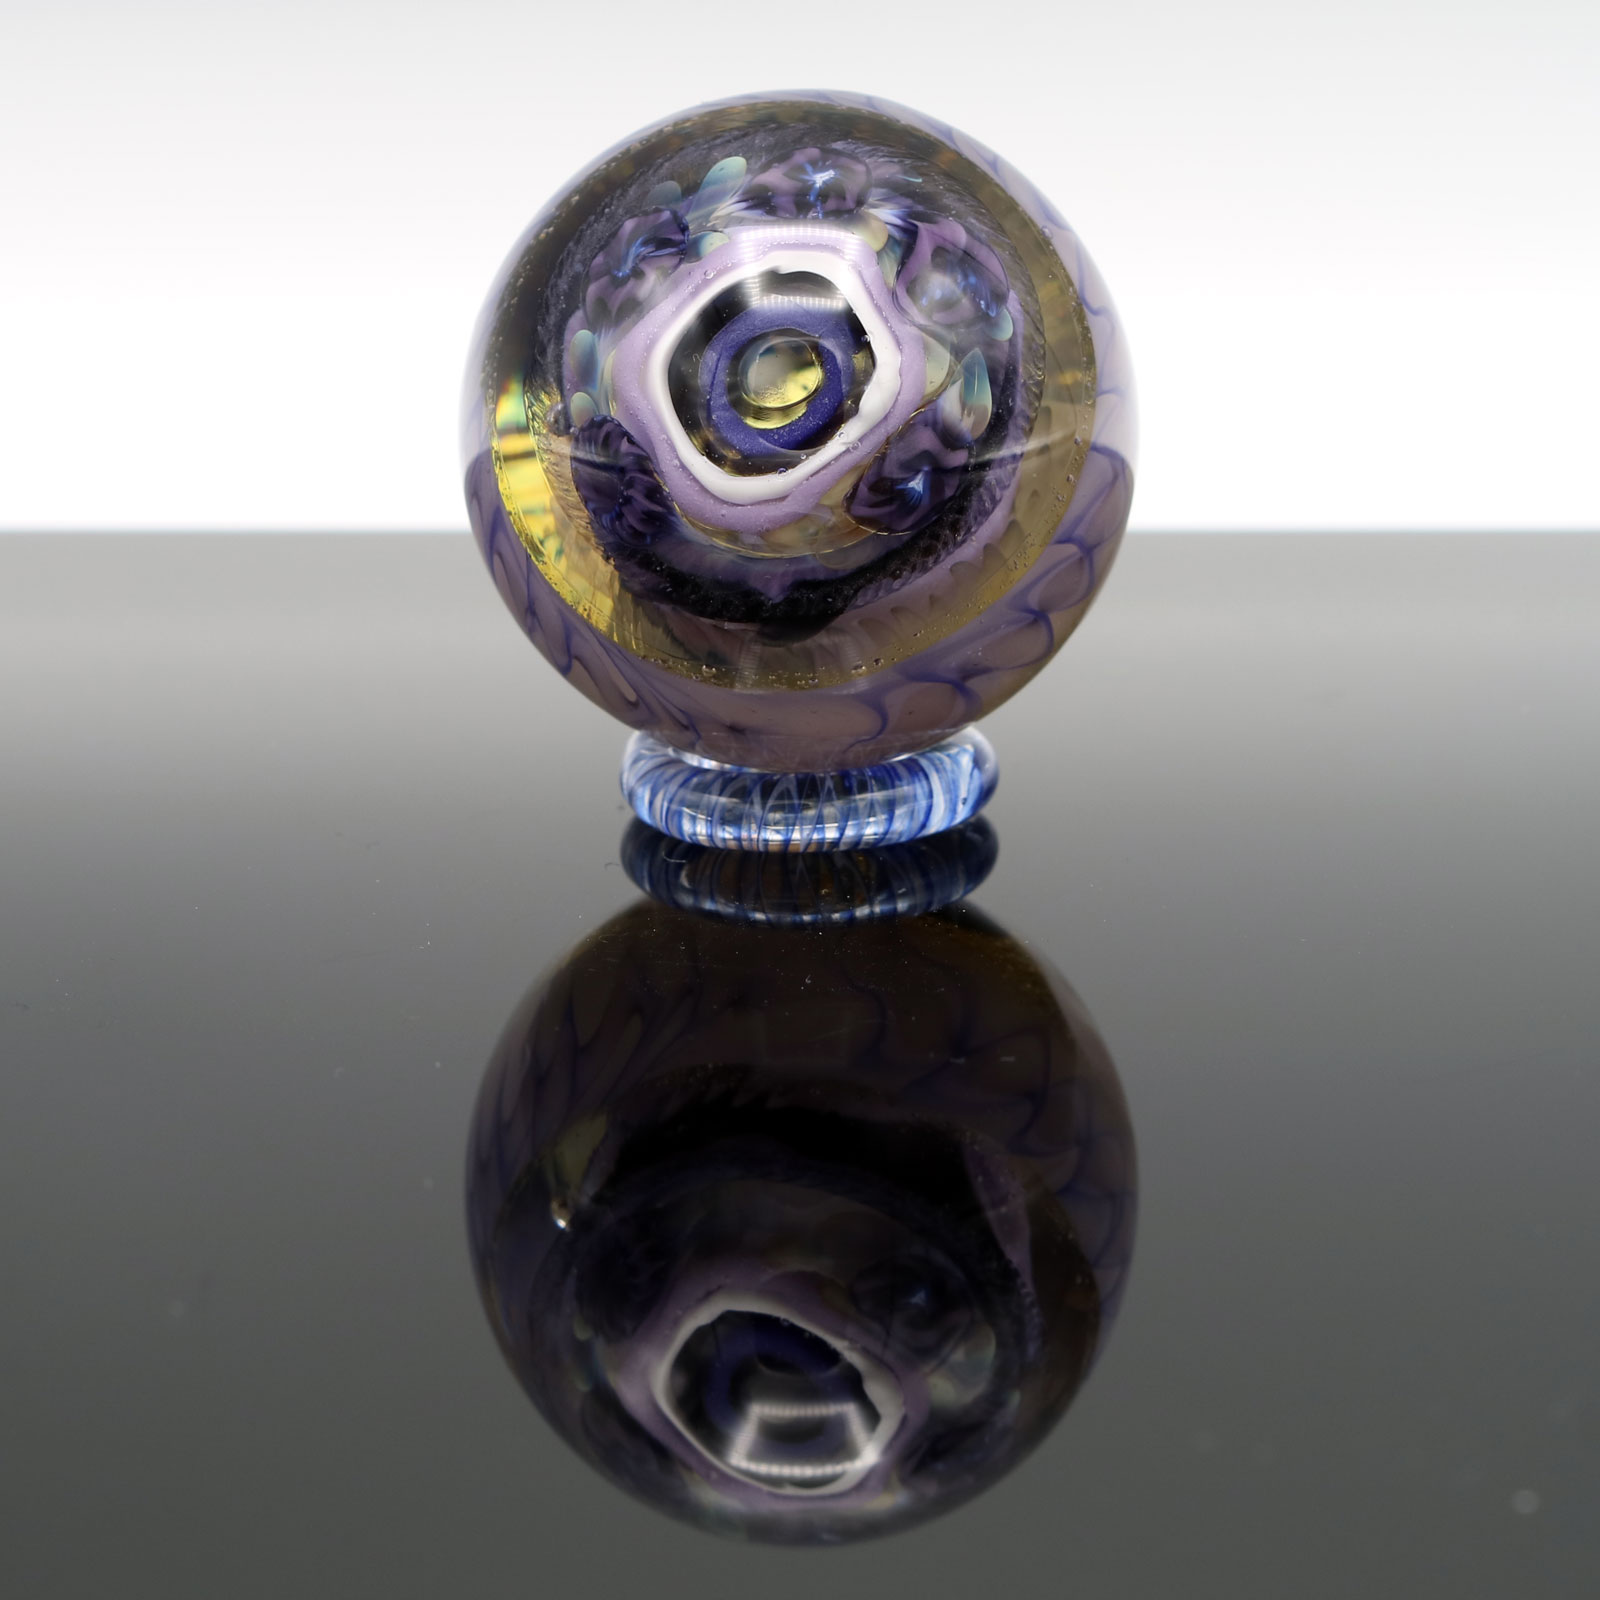 Shana Glassgirl – Large Trippy Marble